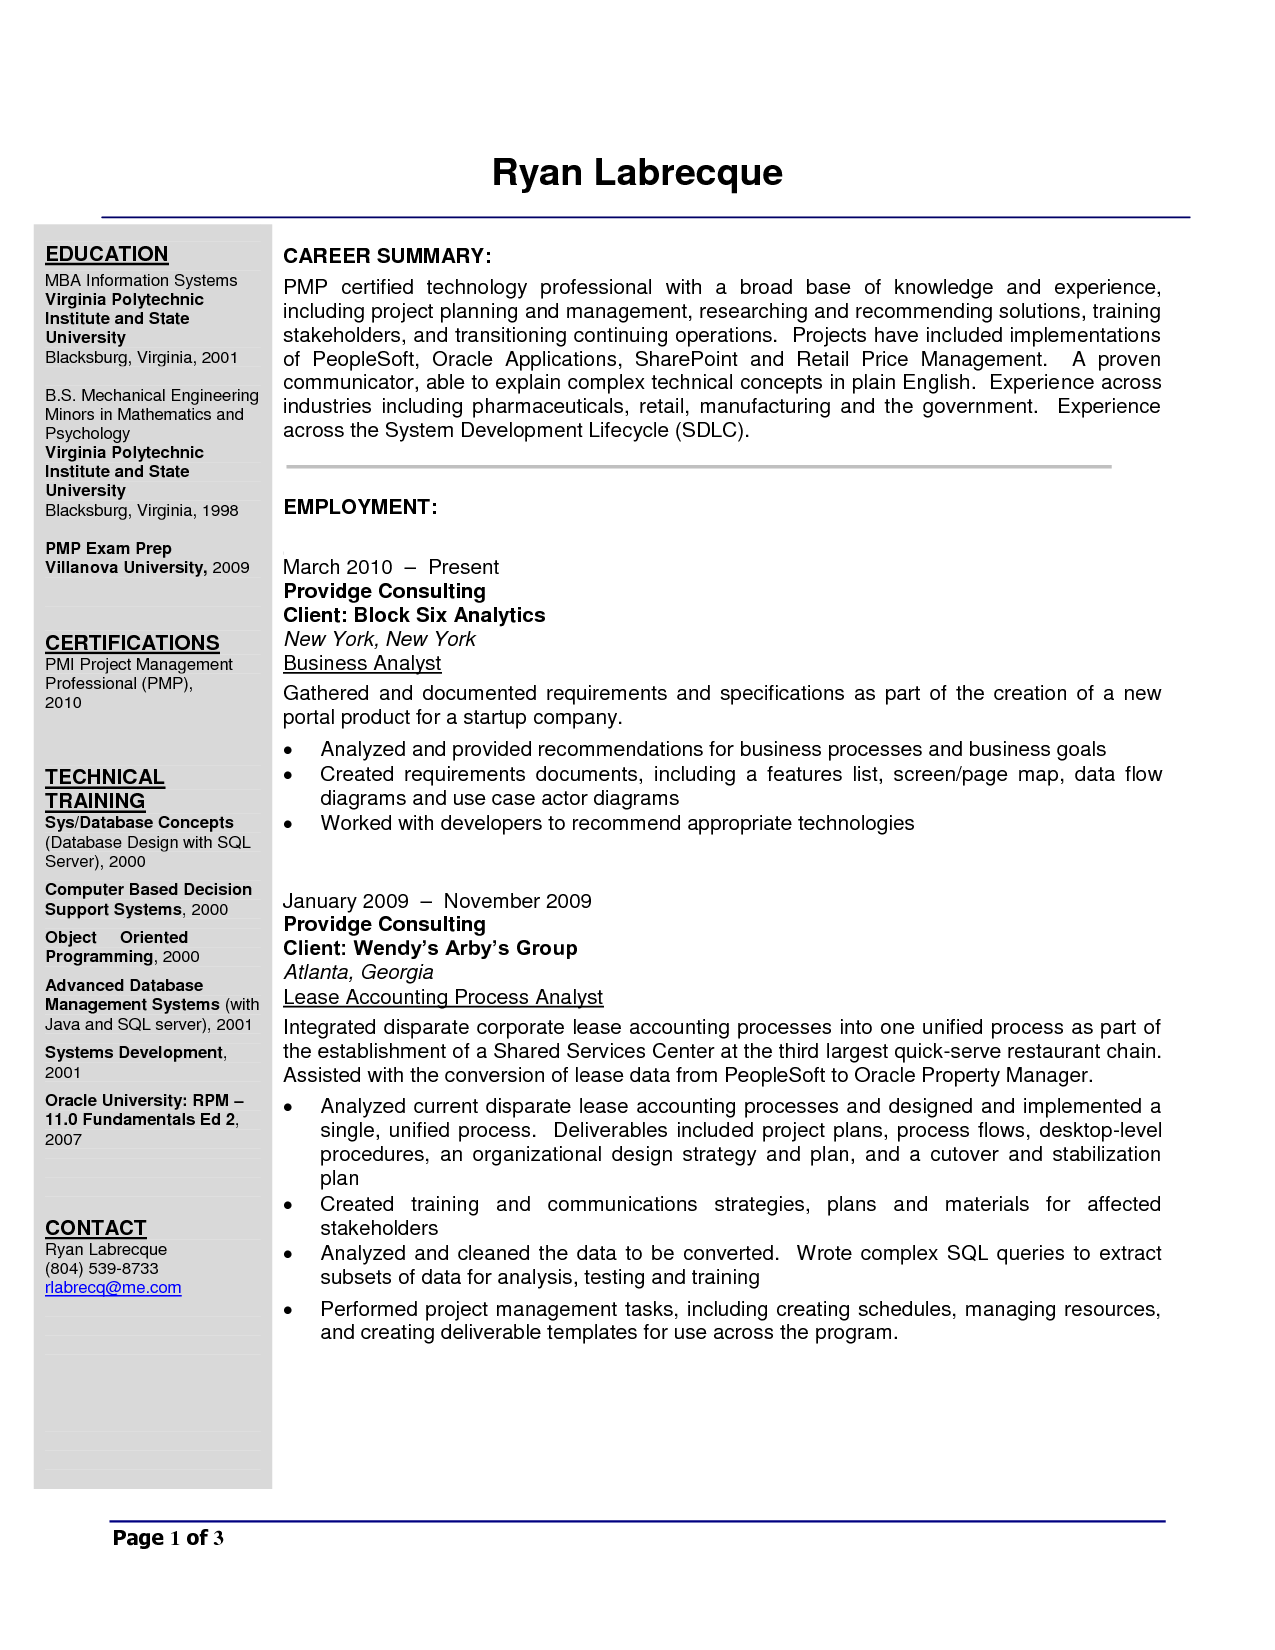 business analyst resume business analyst resume templates business analyst resume sample doc by ryan labrecque - Sample Resume Business Analyst